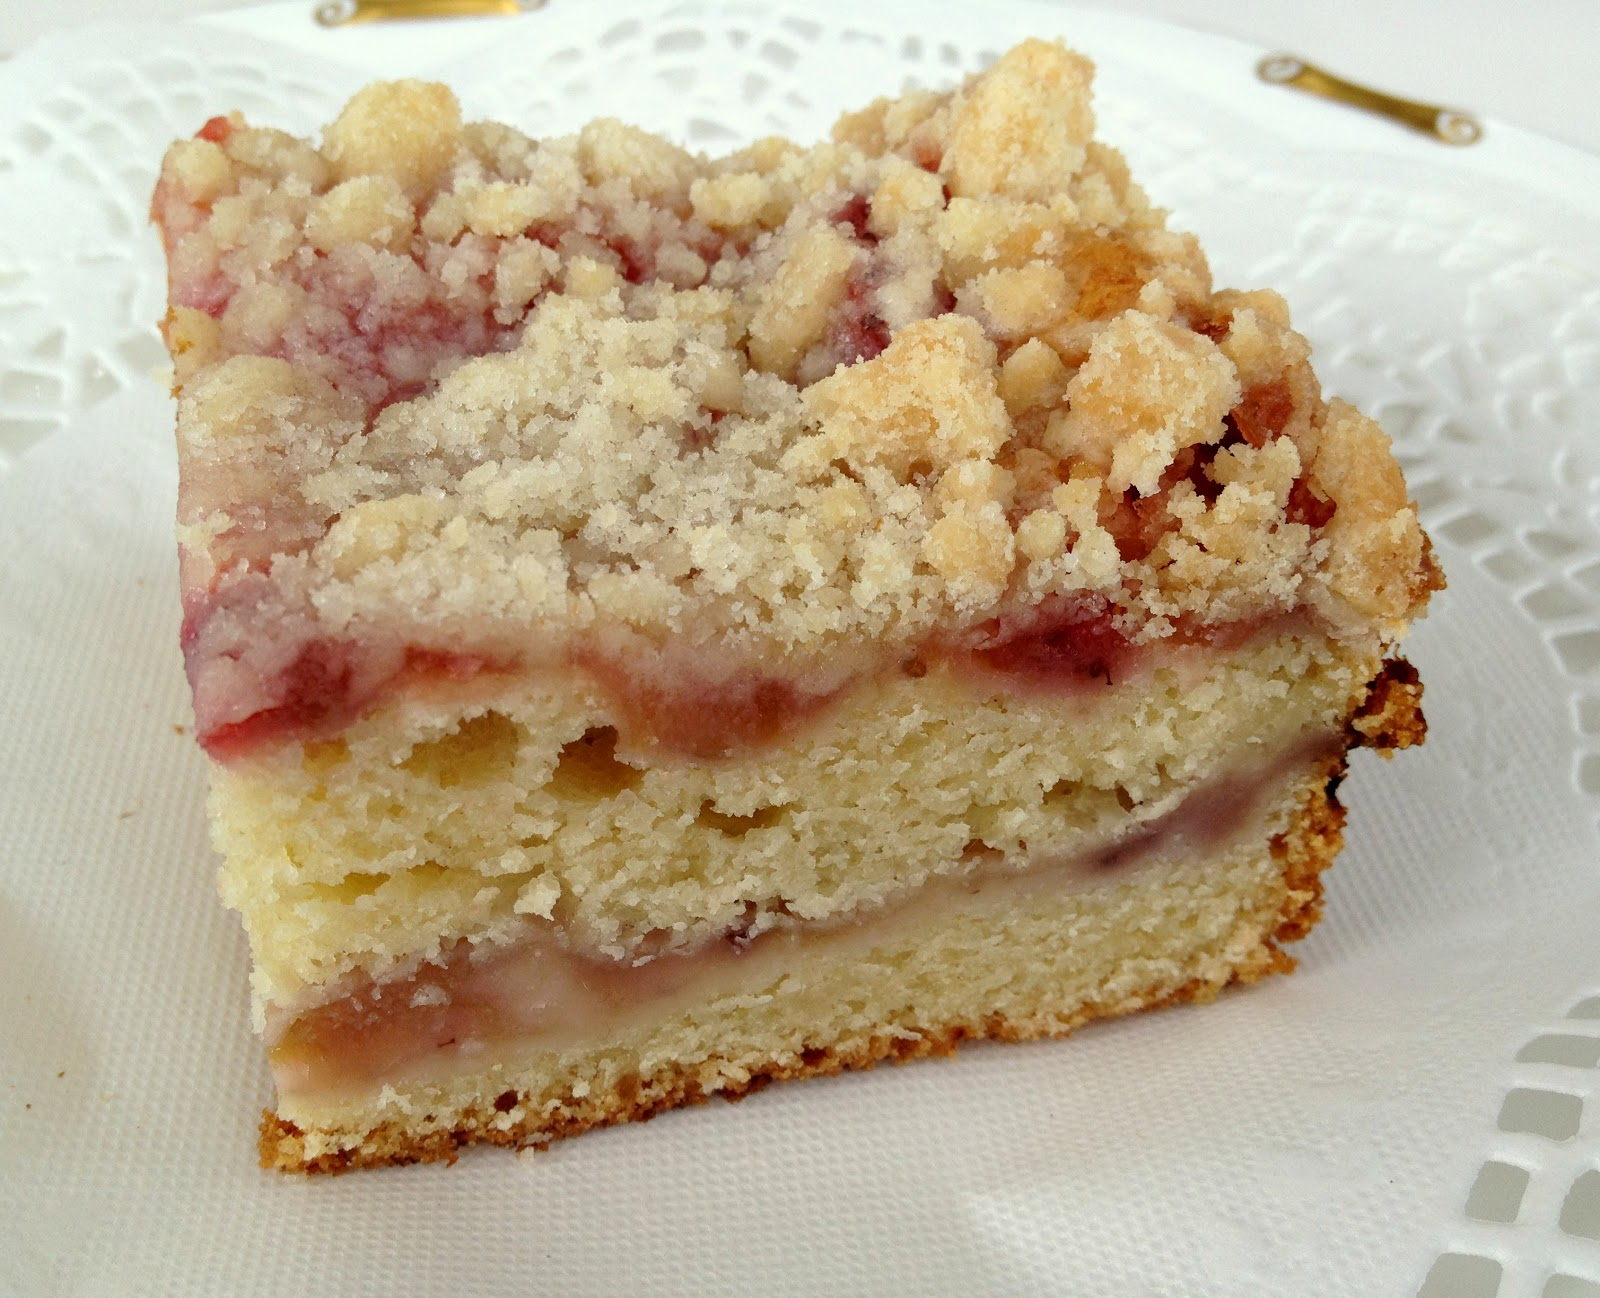 Rhubarb Cake Recipes With Streusel Topping